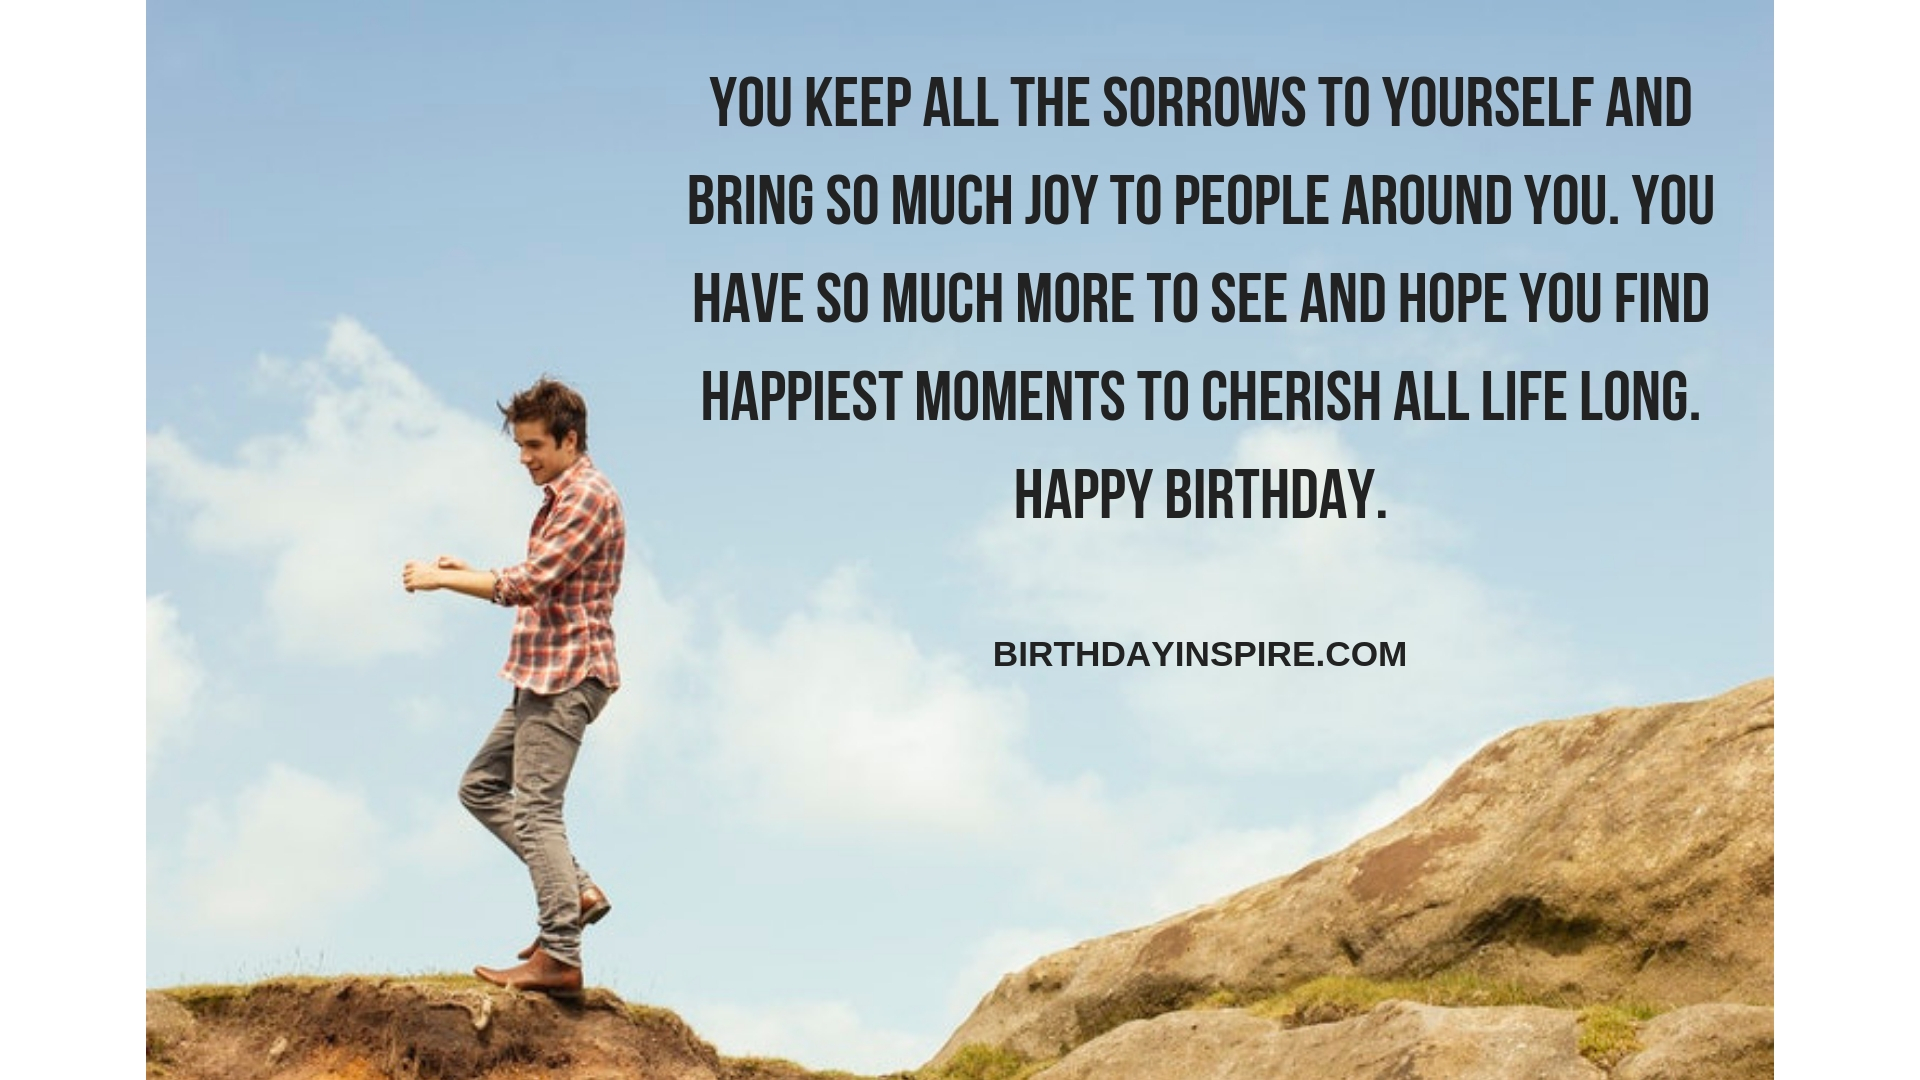 50 Most Funny Birthday Wishes Greetings For Brother In Law